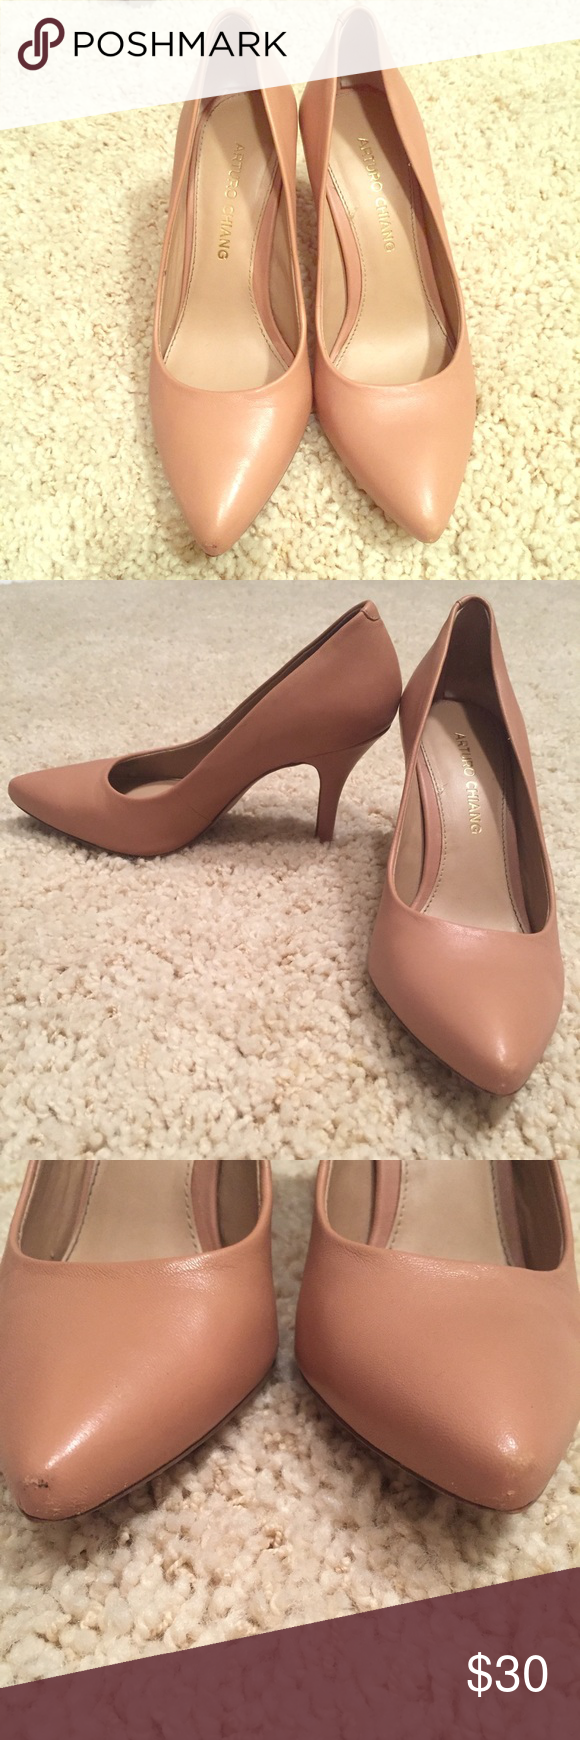 Arturo Chiang sz 6 EUC pointy toe heels Arturo Chiang sz 6 EUC pointy toe heels helloooooo who doesn't need this wardrobe staple?! These are still sold in store for way more 💰💰💰 Arturo Chiang Shoes Heels